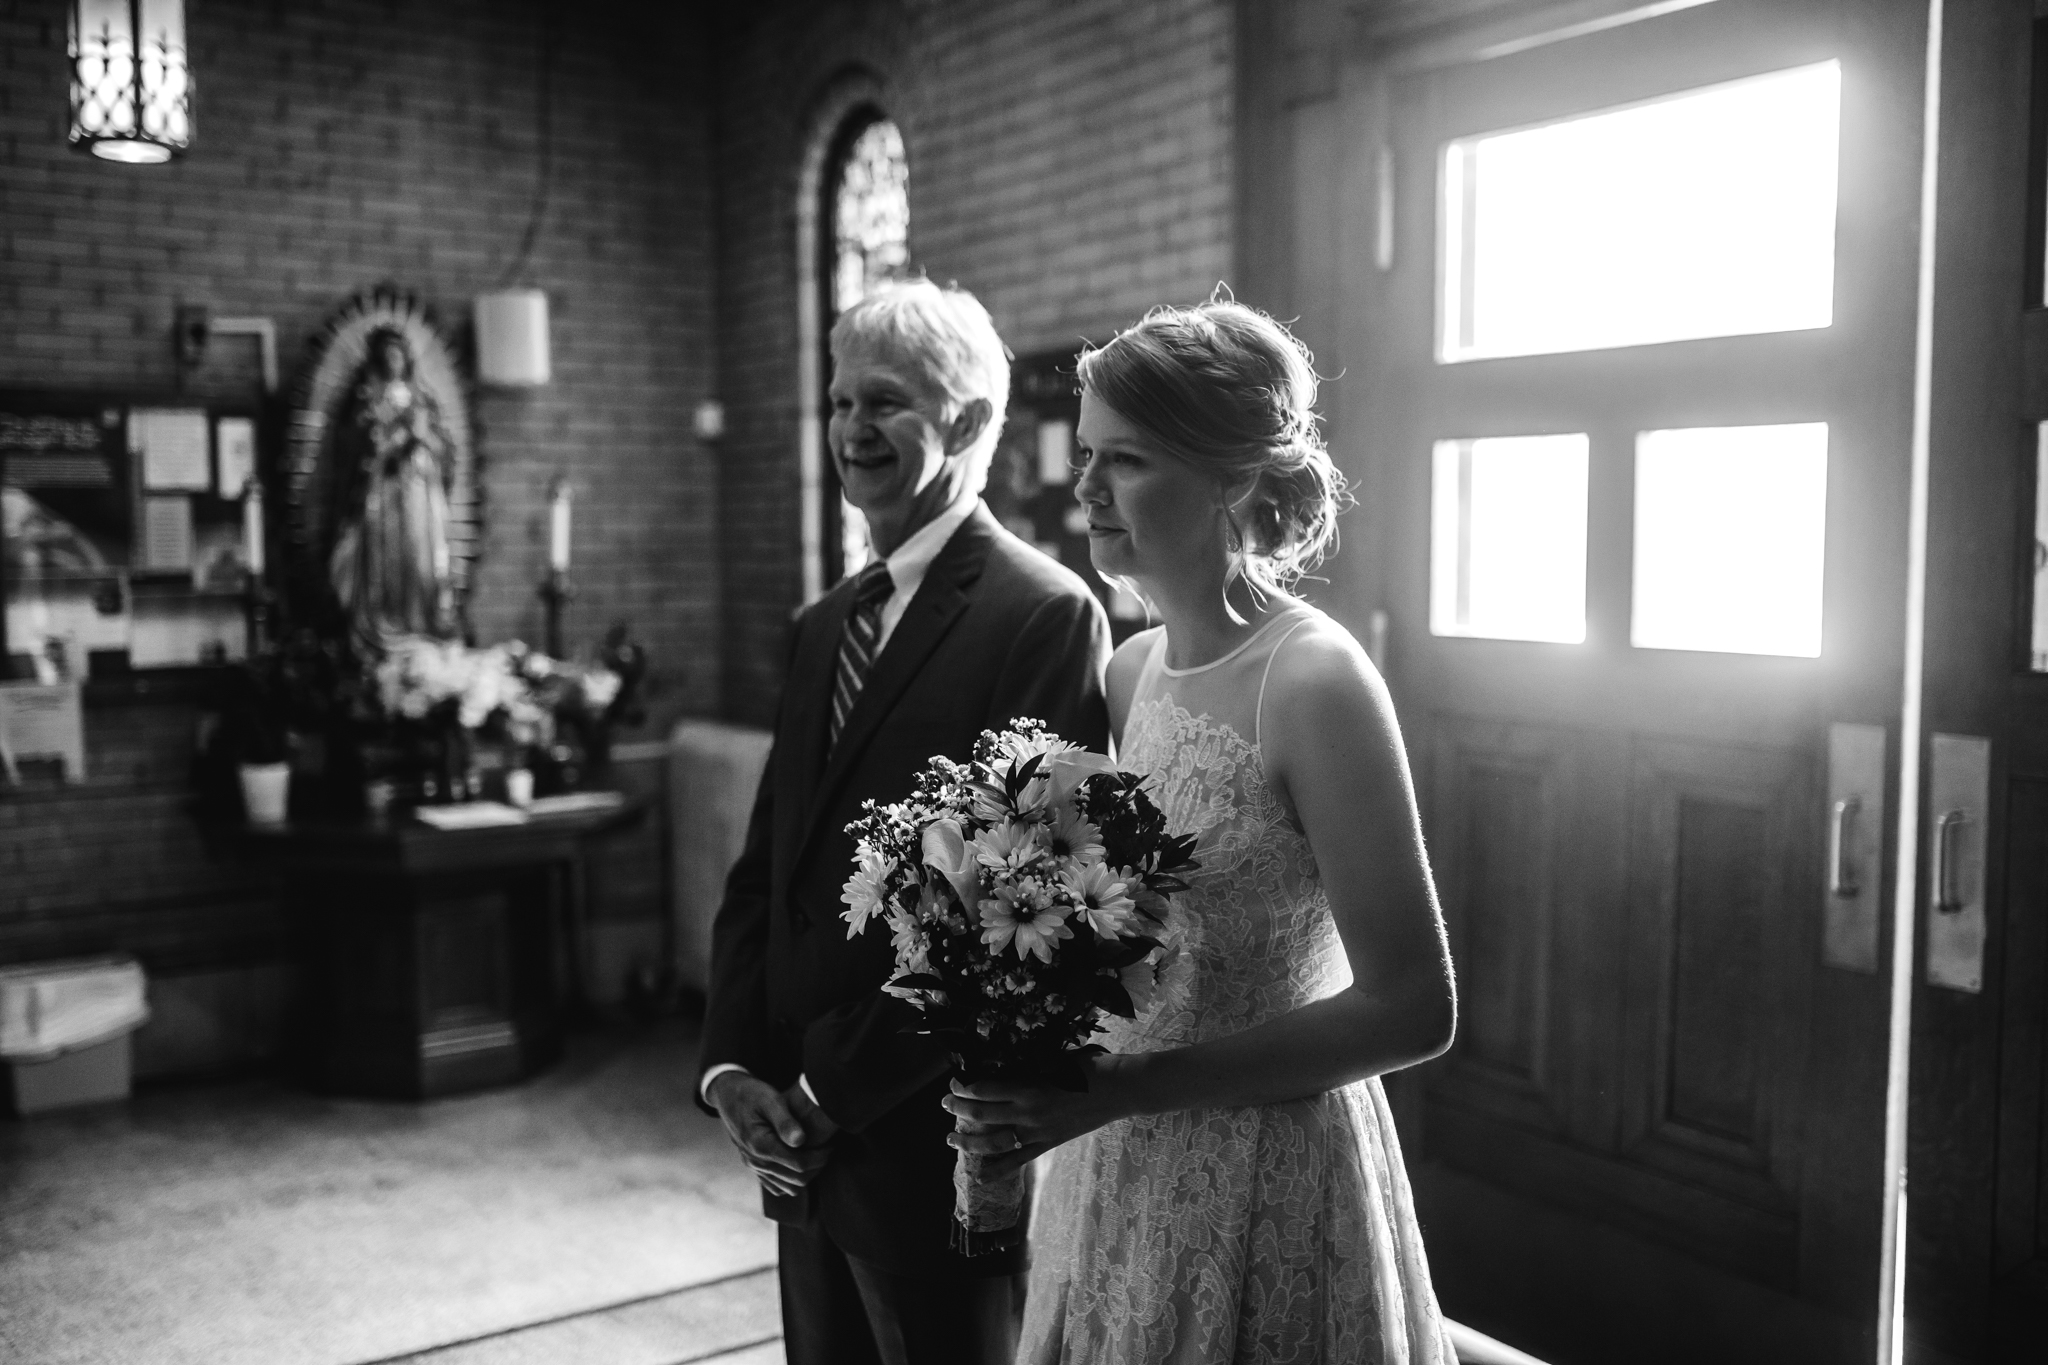 asheville-wedding-photographers-TheBasilicaofSt.Lawrence-IvyCreekFamilyFarm-thewarmtharoundyou (3 of 52).jpg